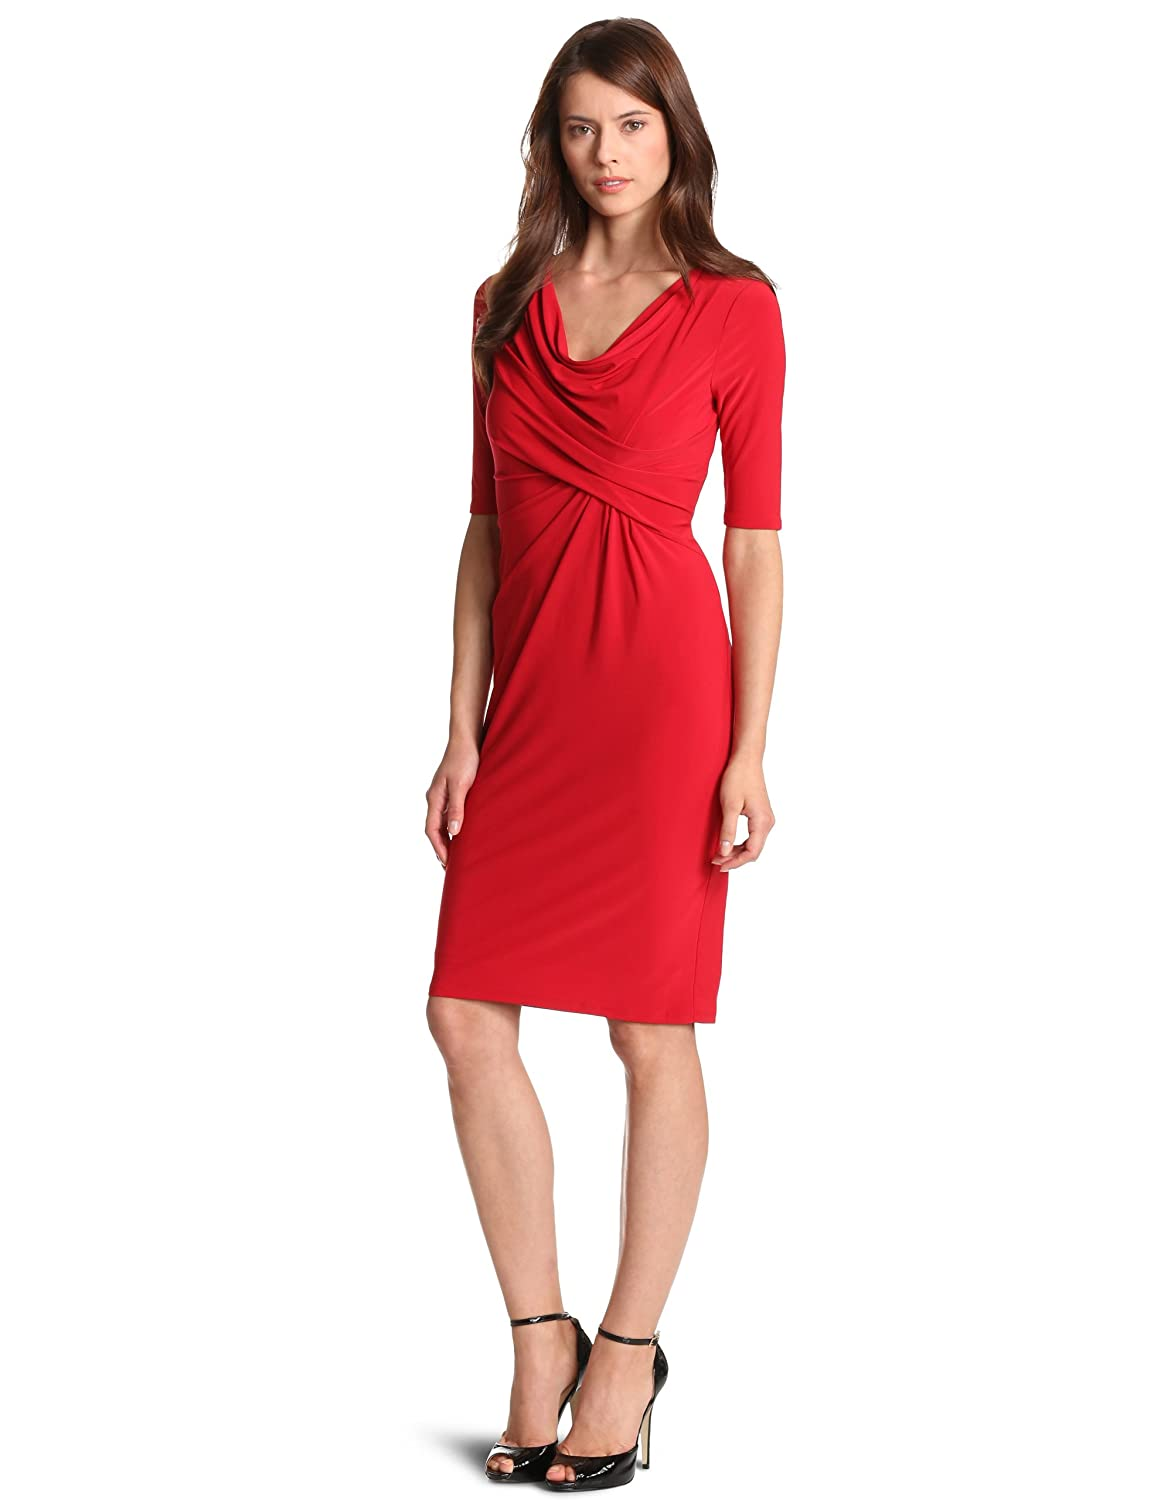 D-shopz: Jones New York Women's Mj Cowl Draped Dress